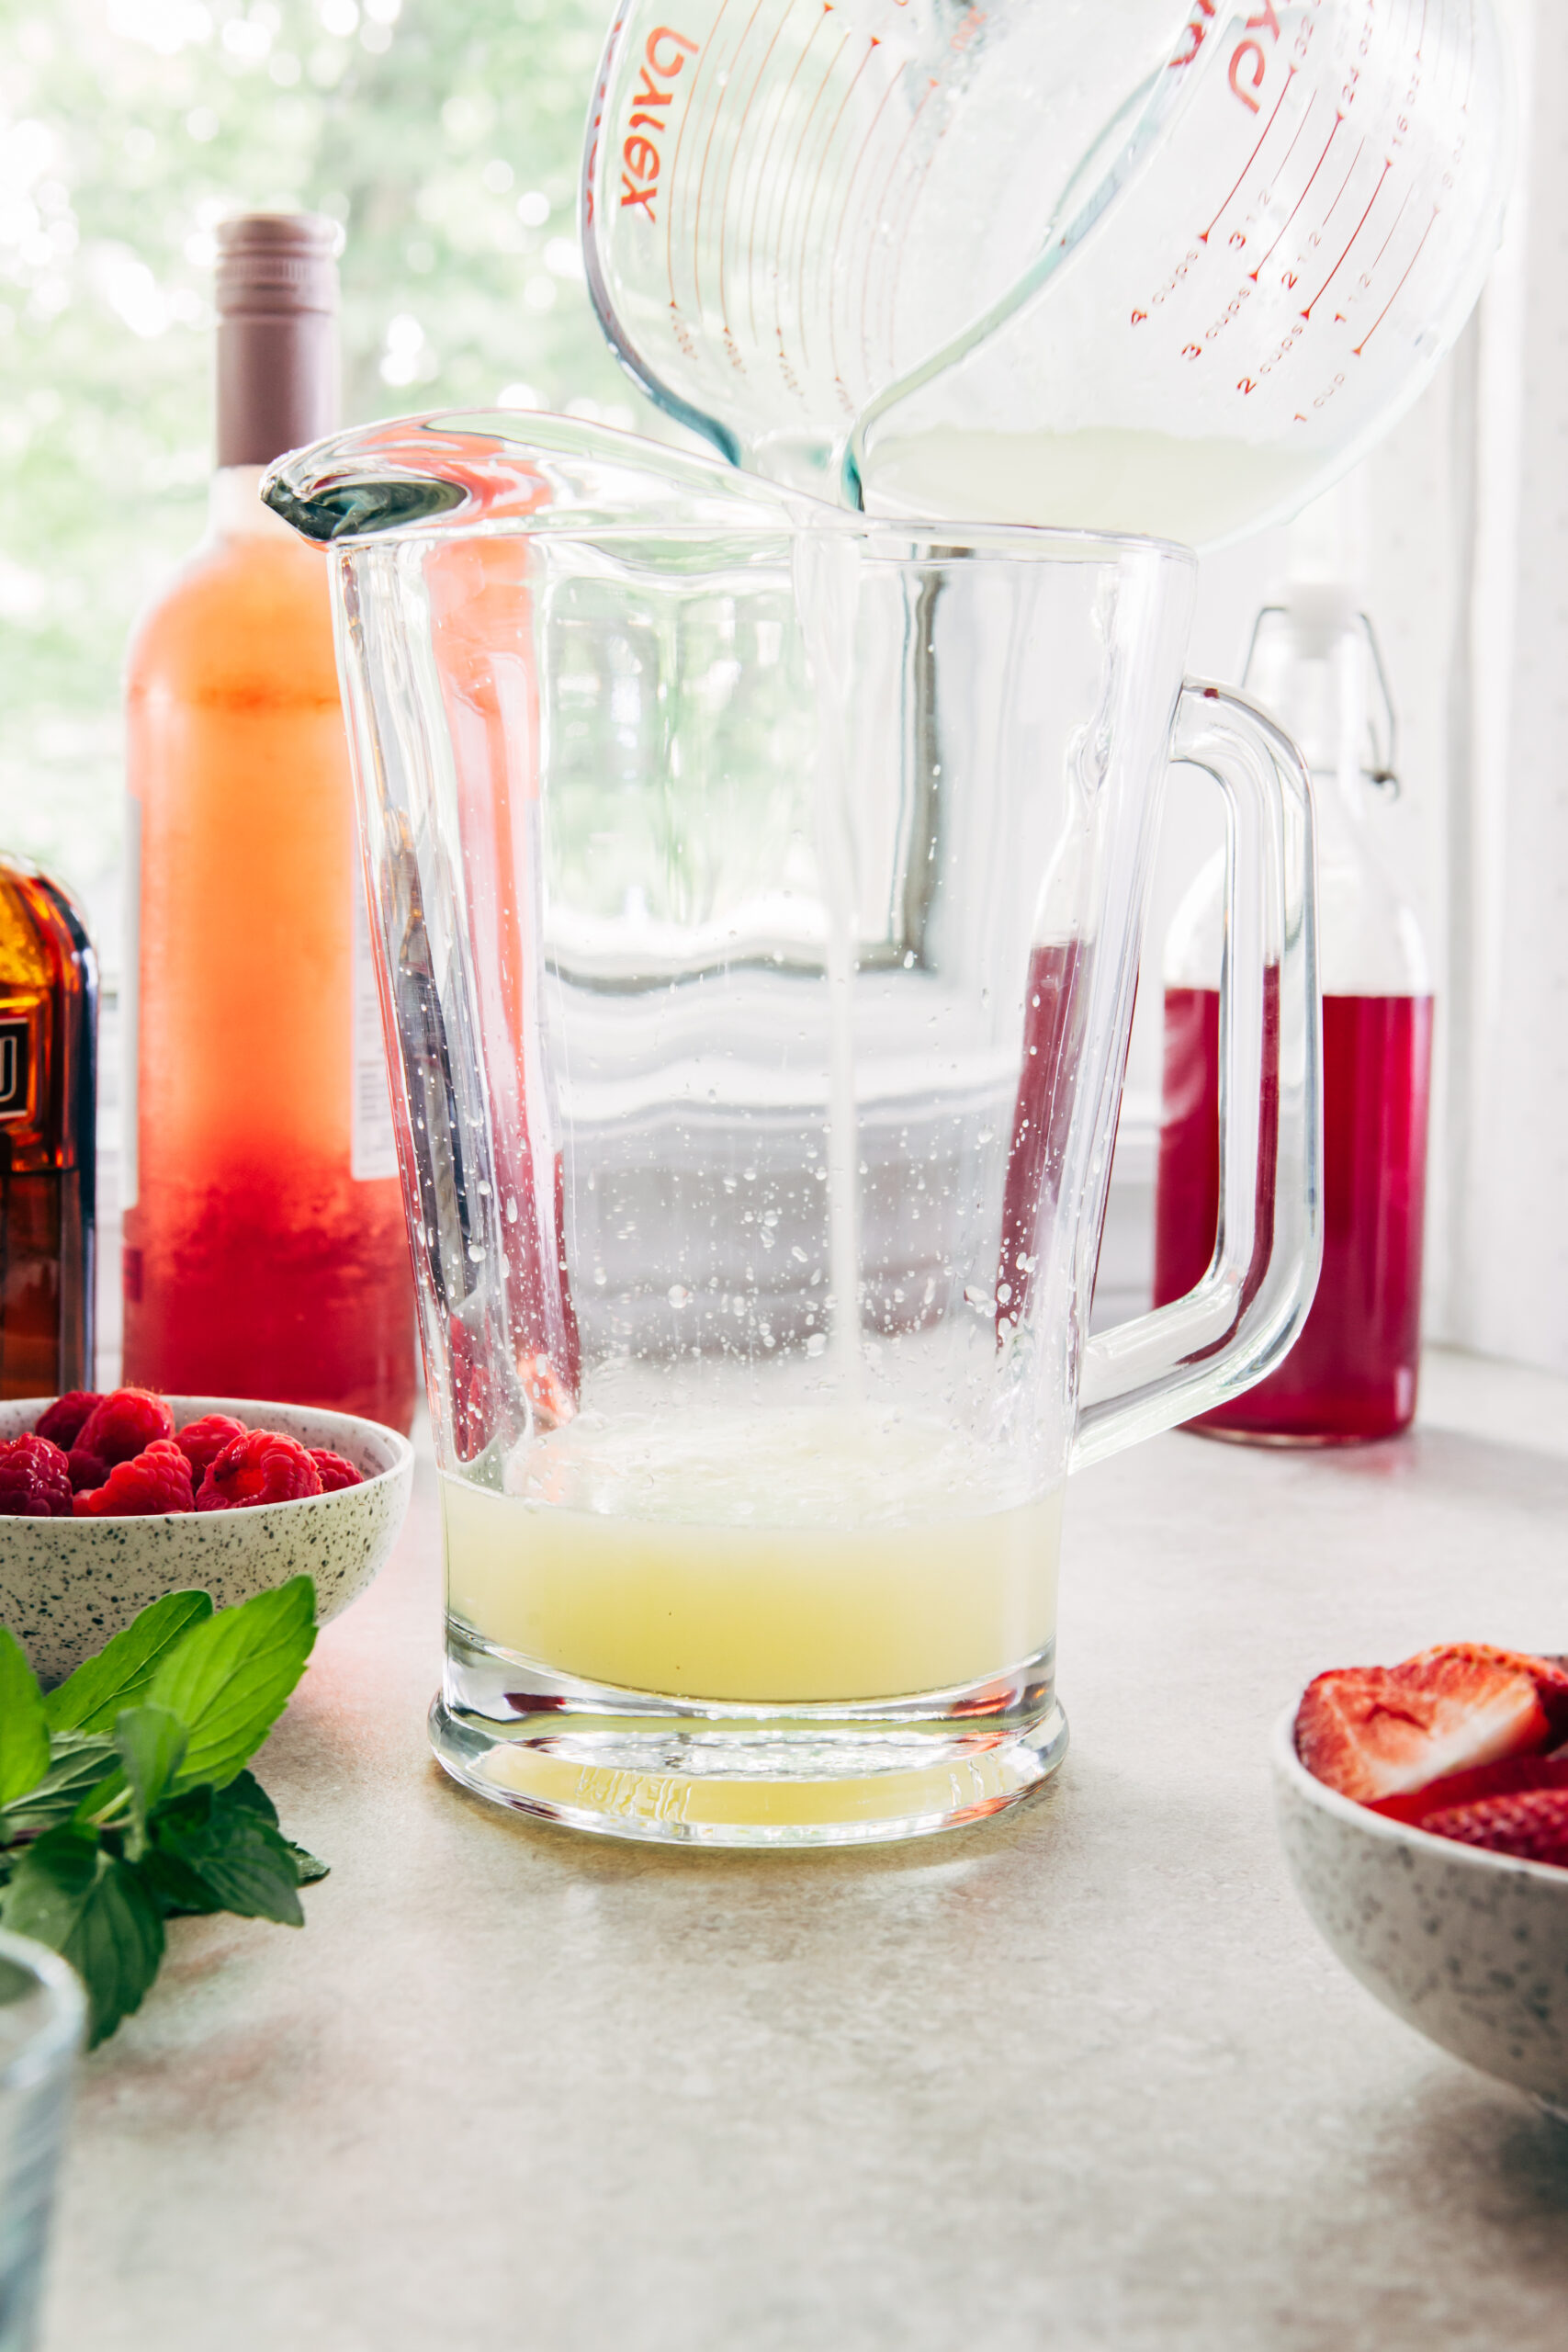 Lemon juice pouring from a measuring cup into a glass pitcher of sangria.